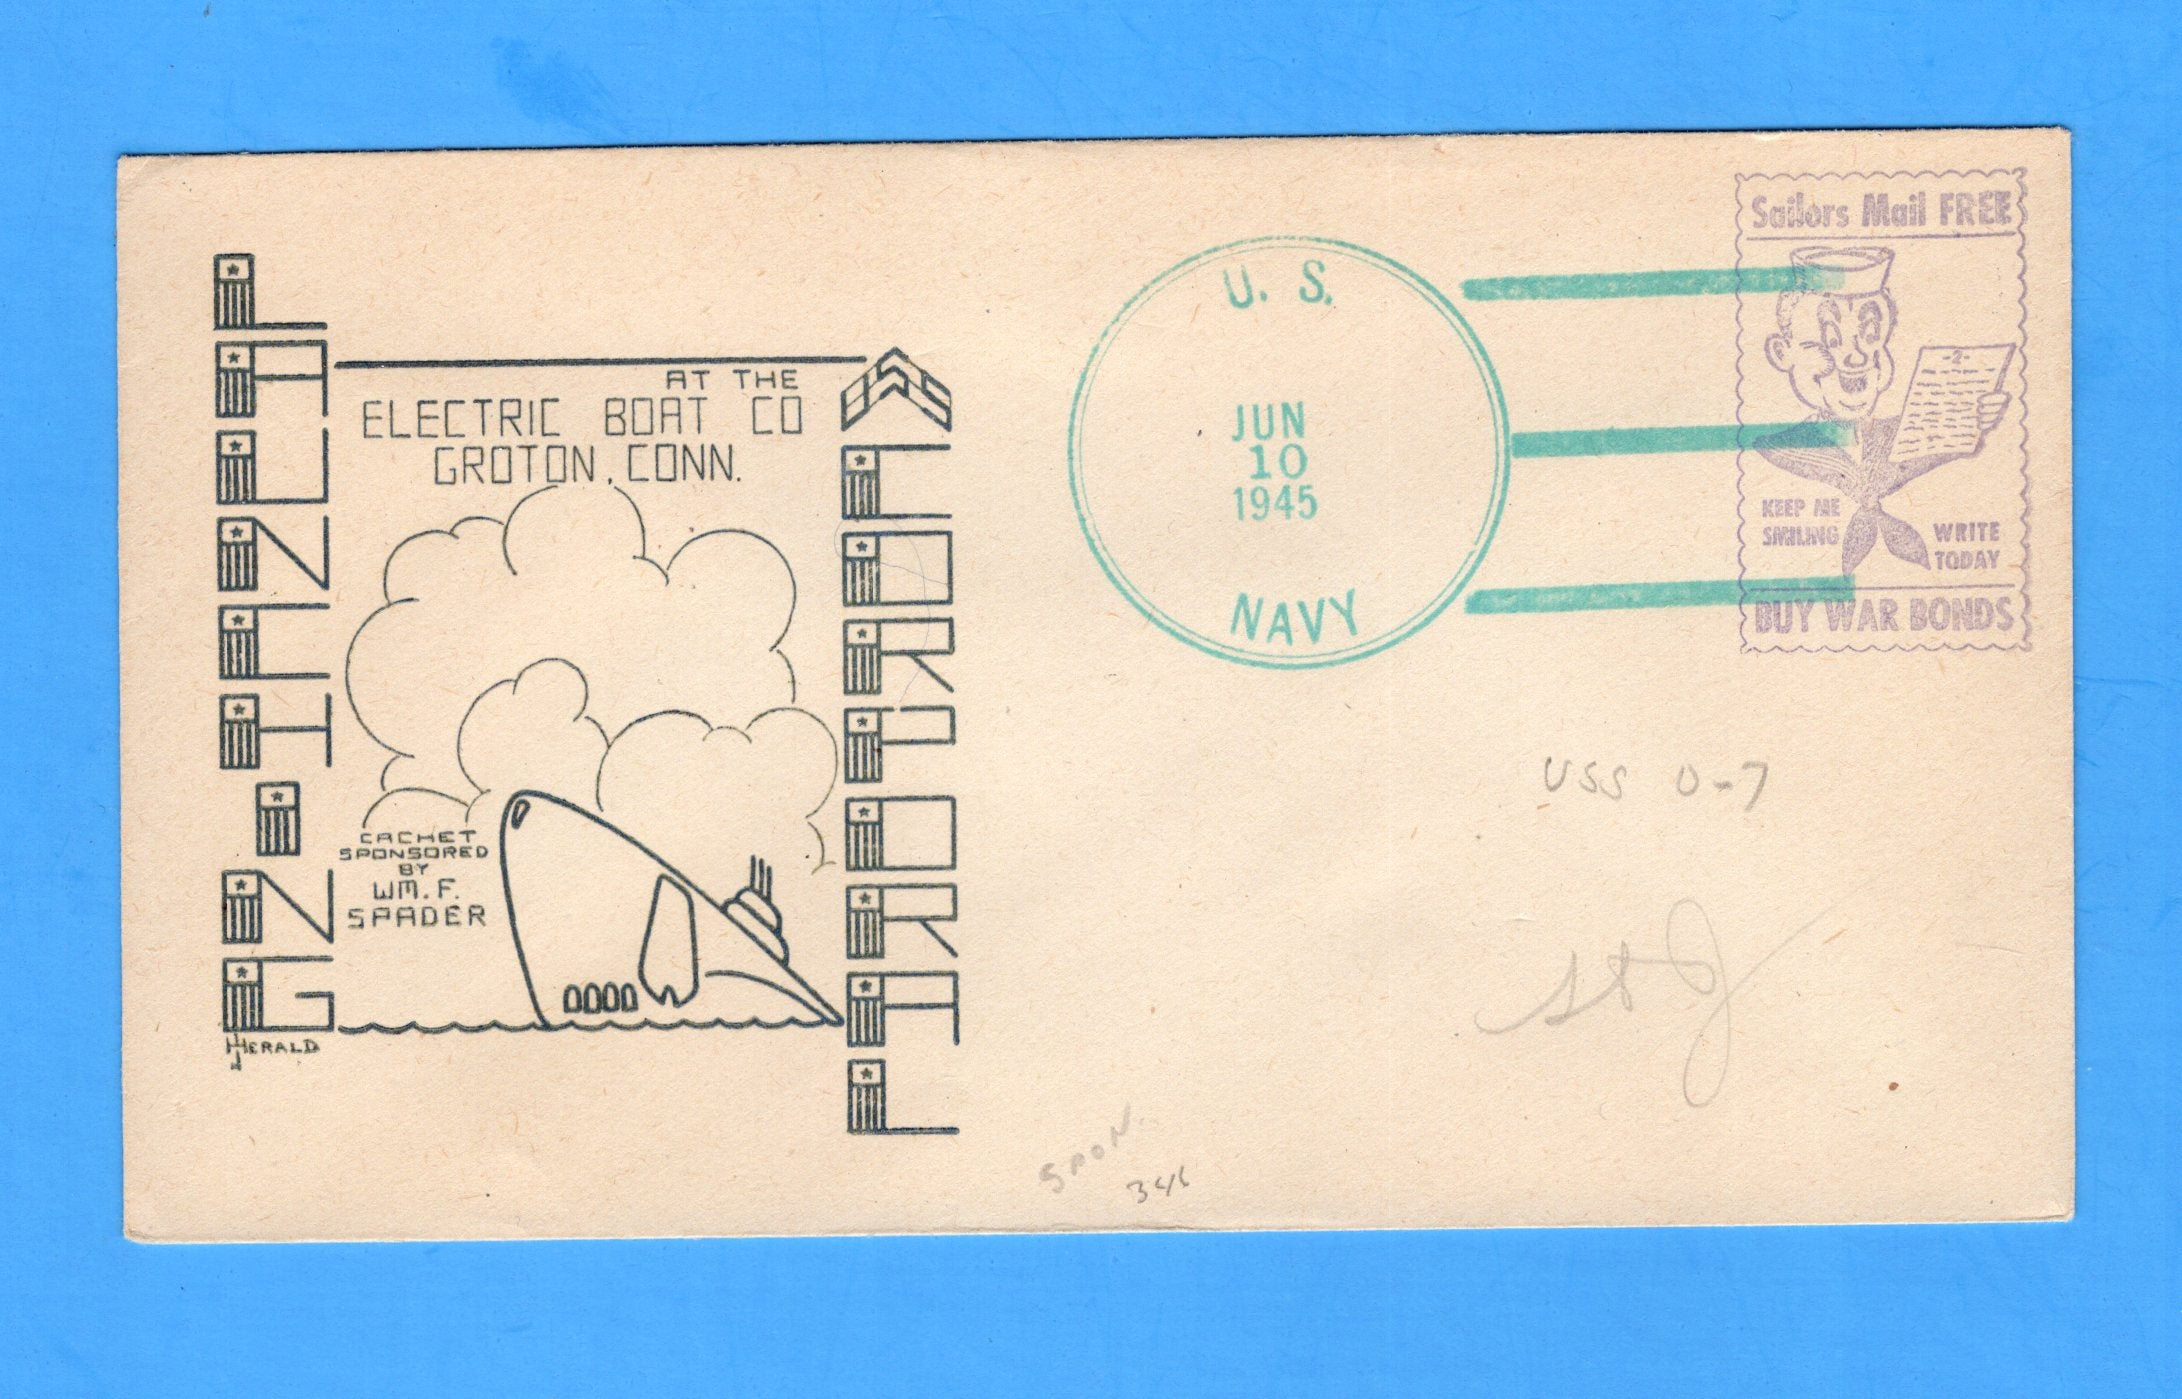 USS Corporal SS-346 Launched June 10, 1945 - Raised Print Cachet